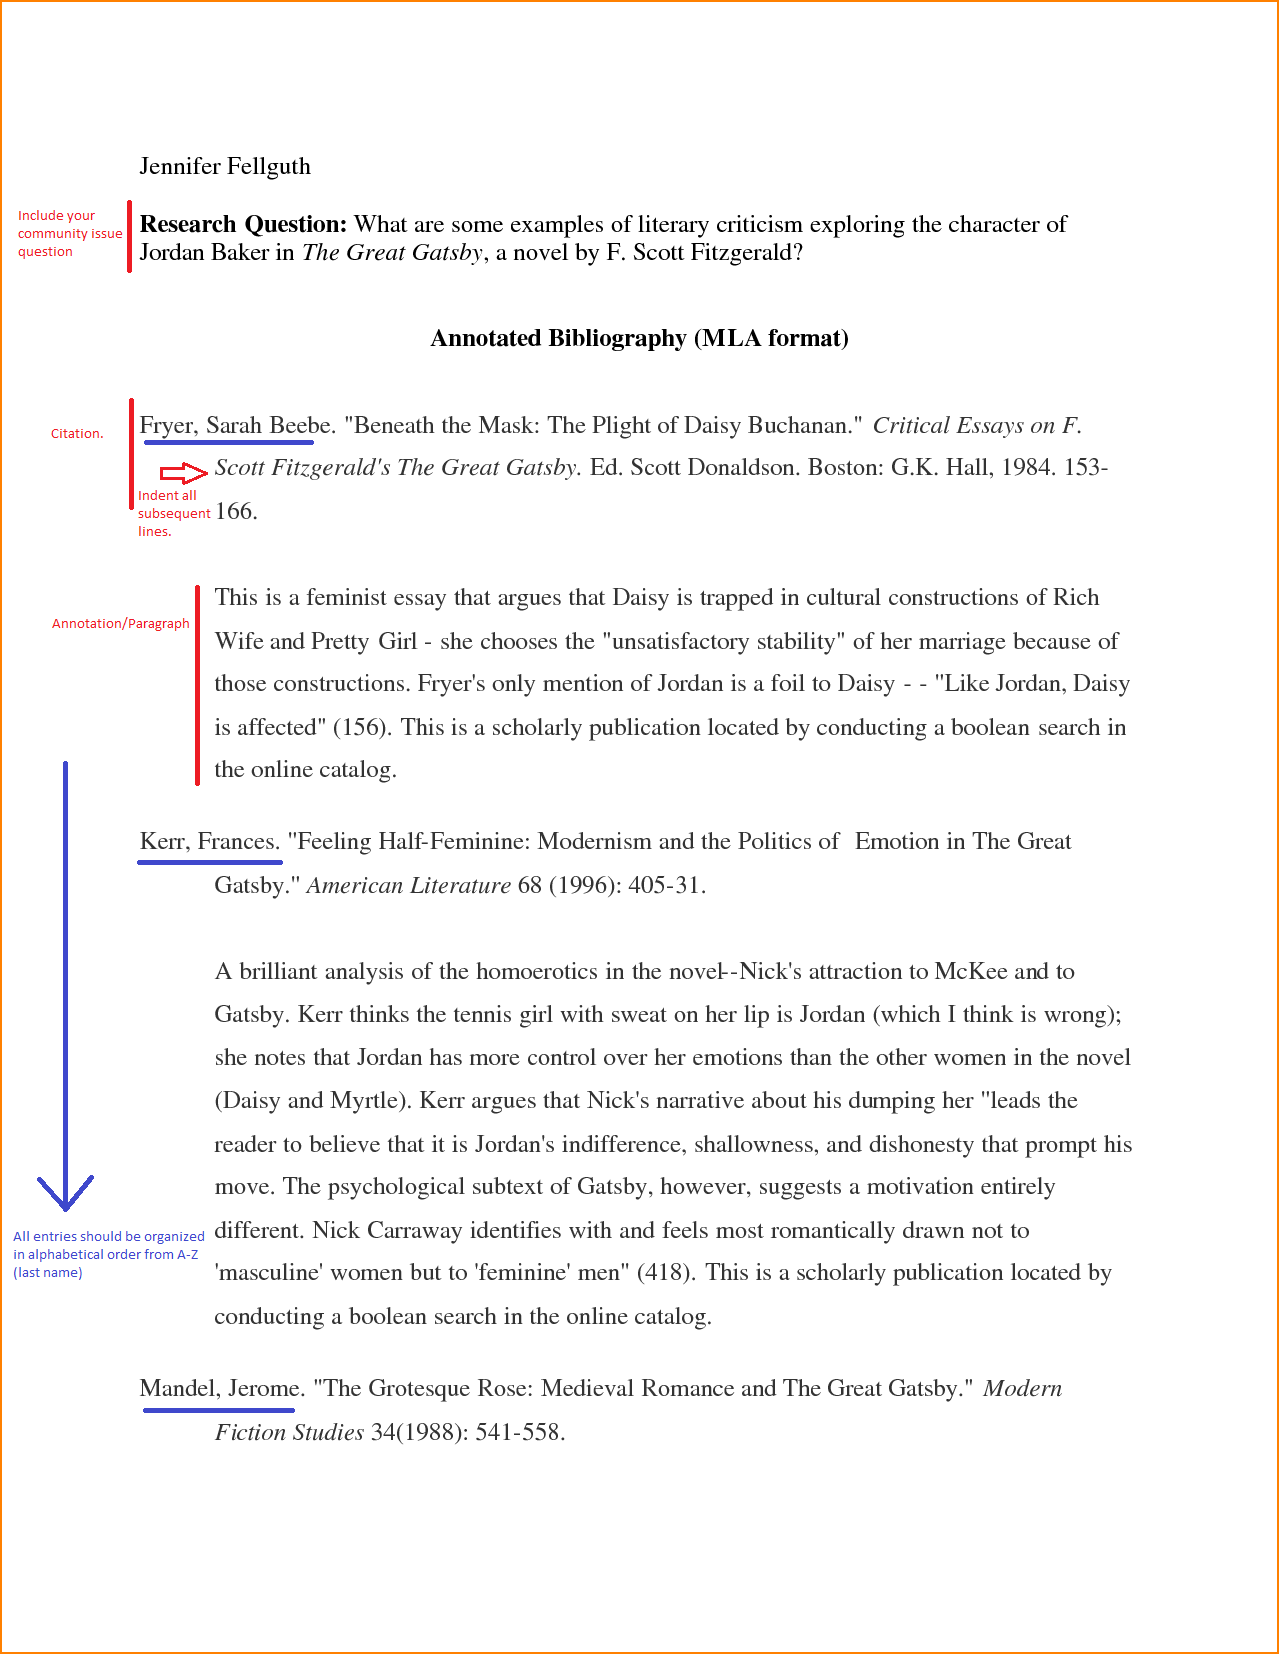 Annotated Bibliography Example MLA